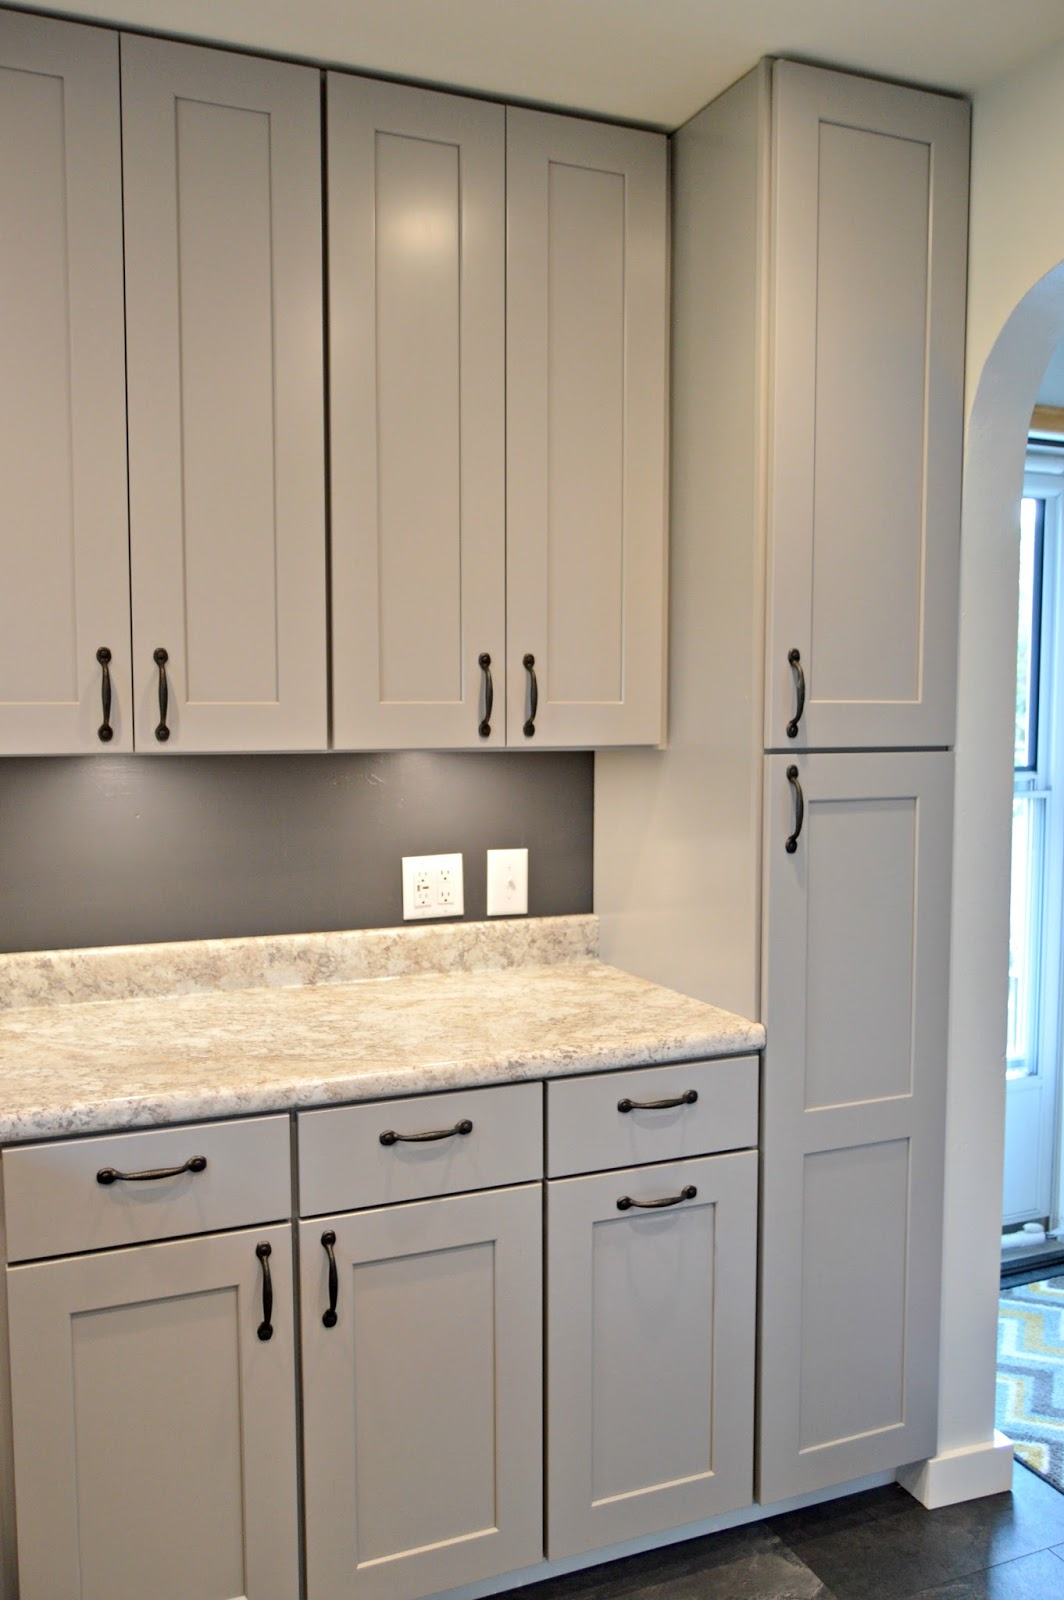 Kruse 39 s workshop kitchen remodel for Kitchen paint colors grey